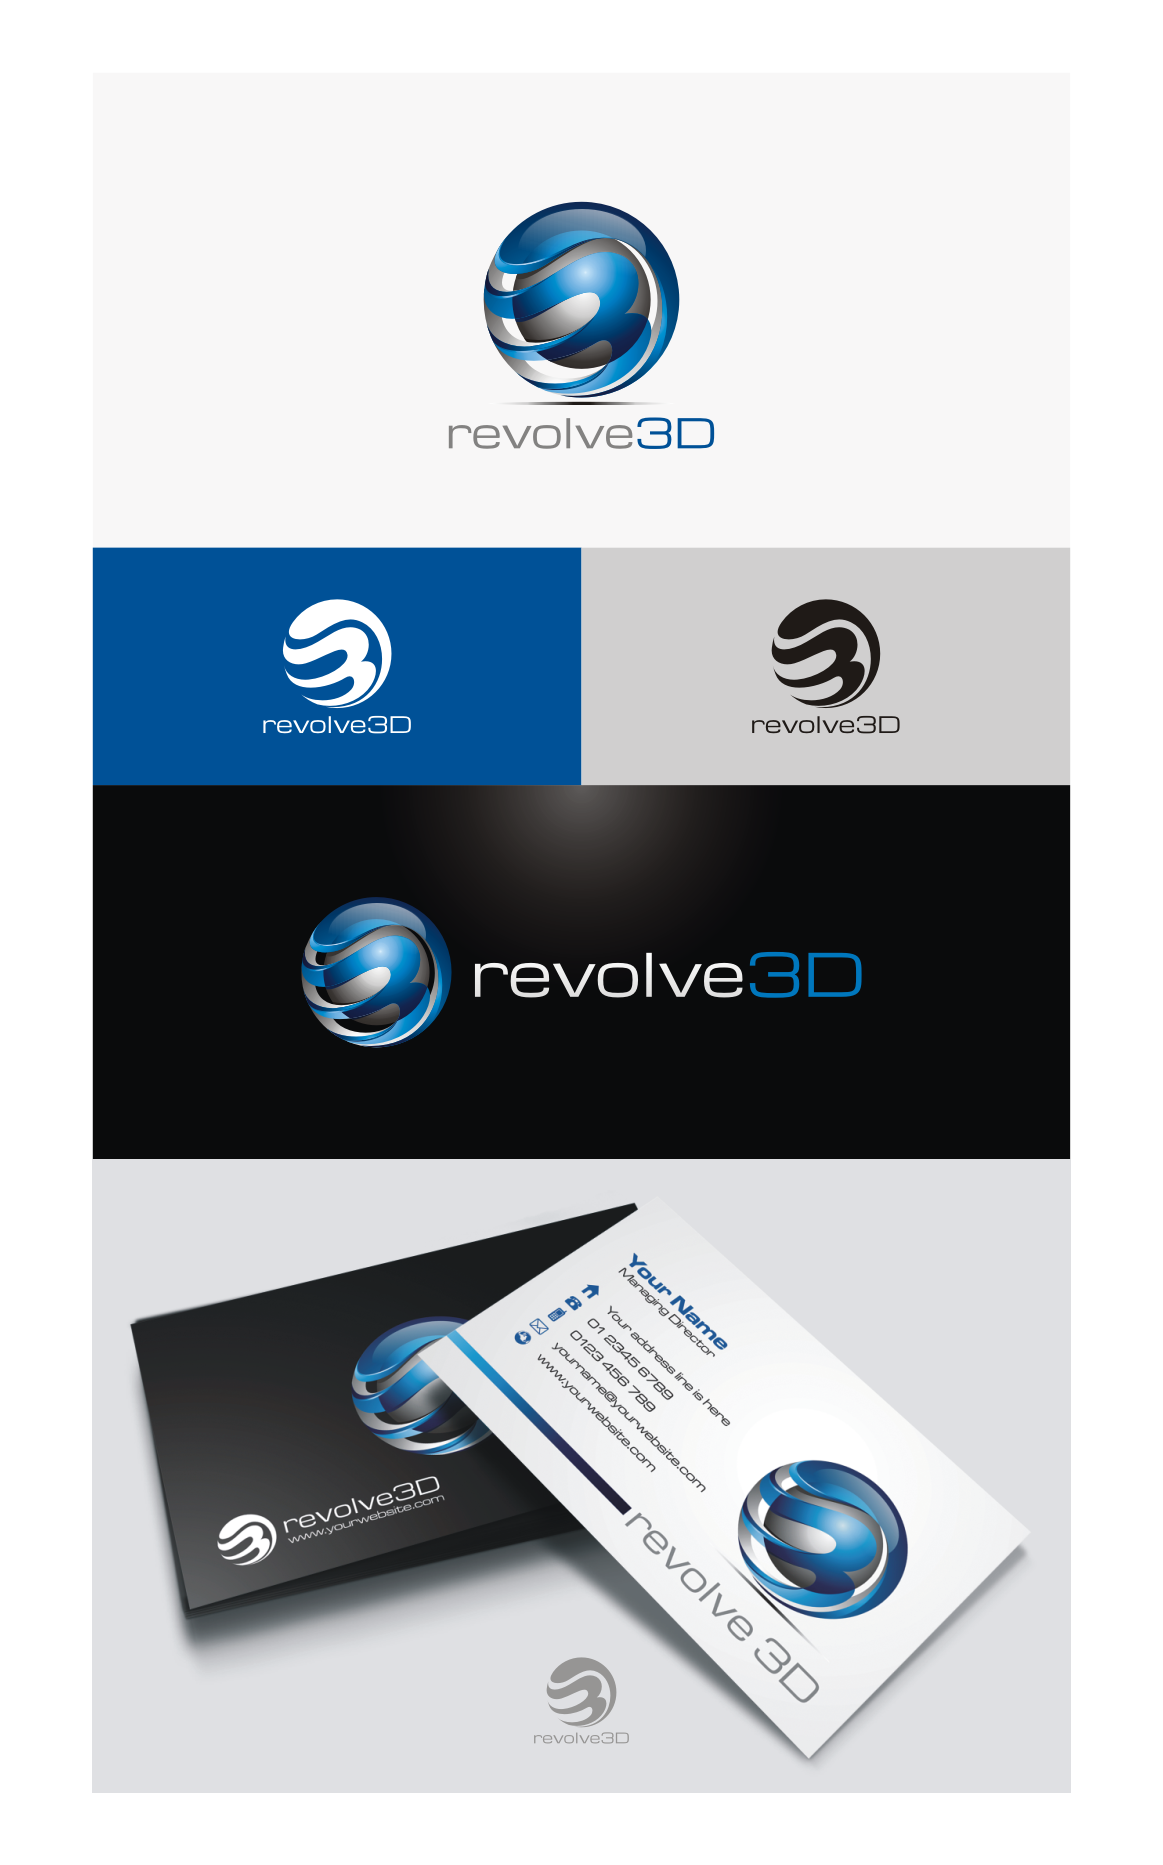 Create a logo for a new 3D printing company